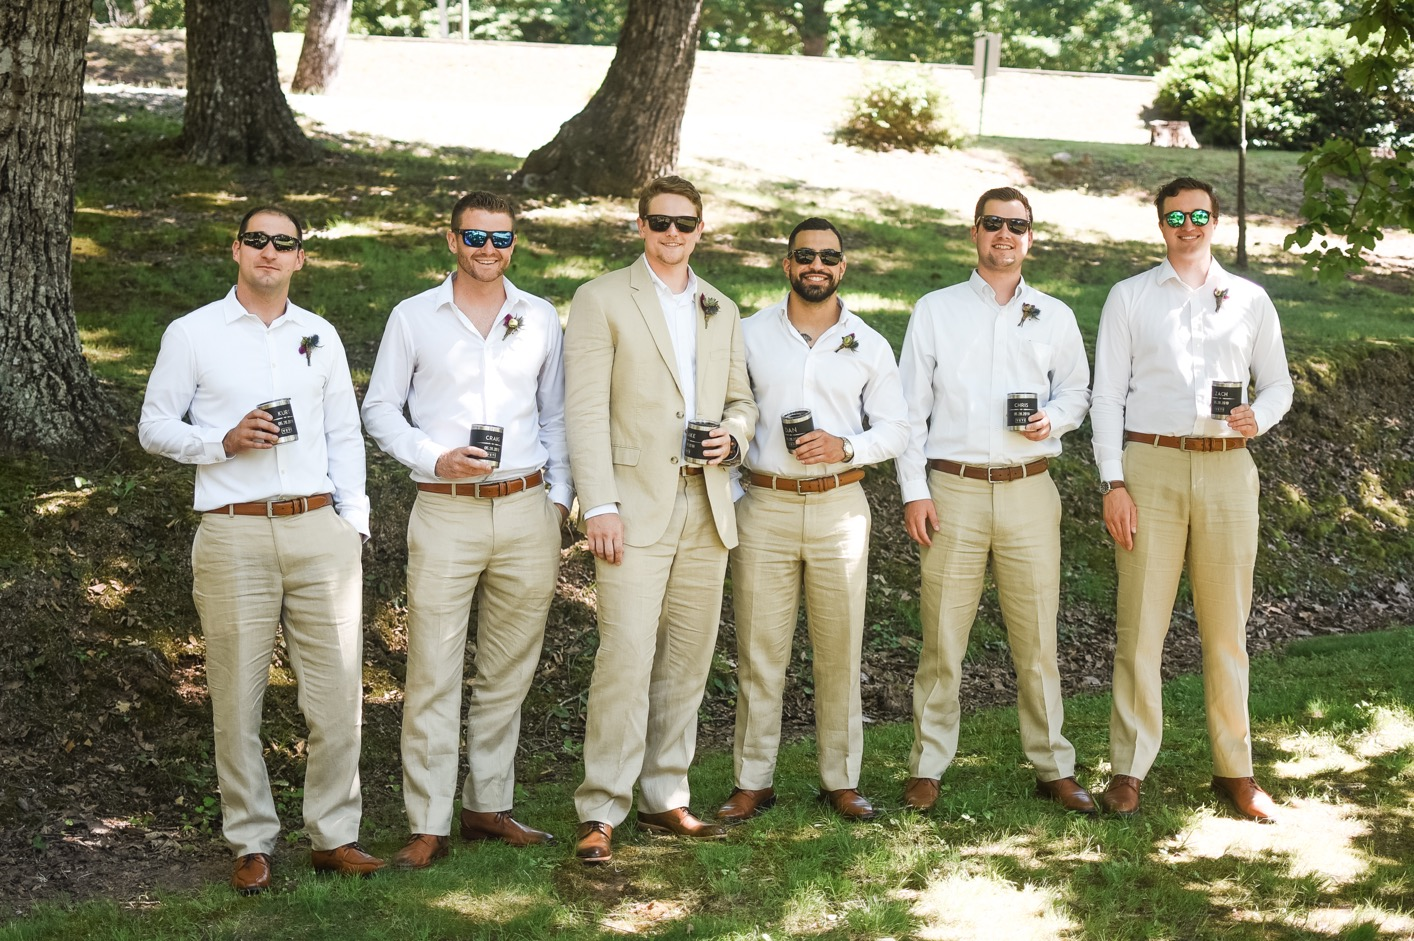 016_Weddings_Groom_Wedding_Photography_Photographers_Atlanta_Georgia_Groomsmen.jpg